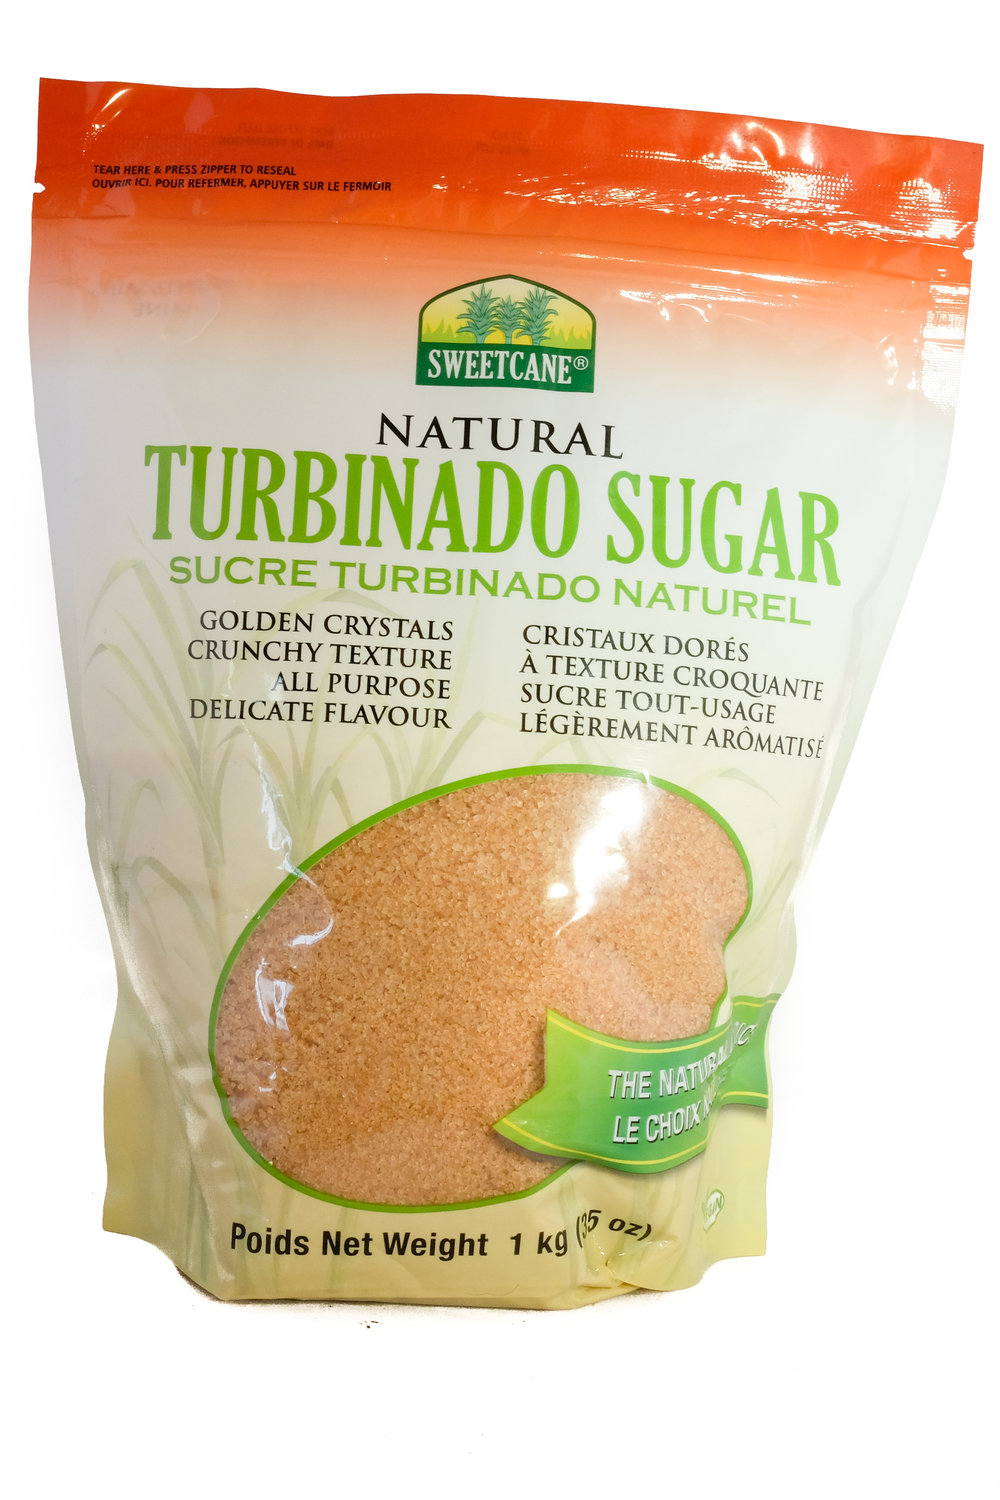 Natural Turbinado Sugar